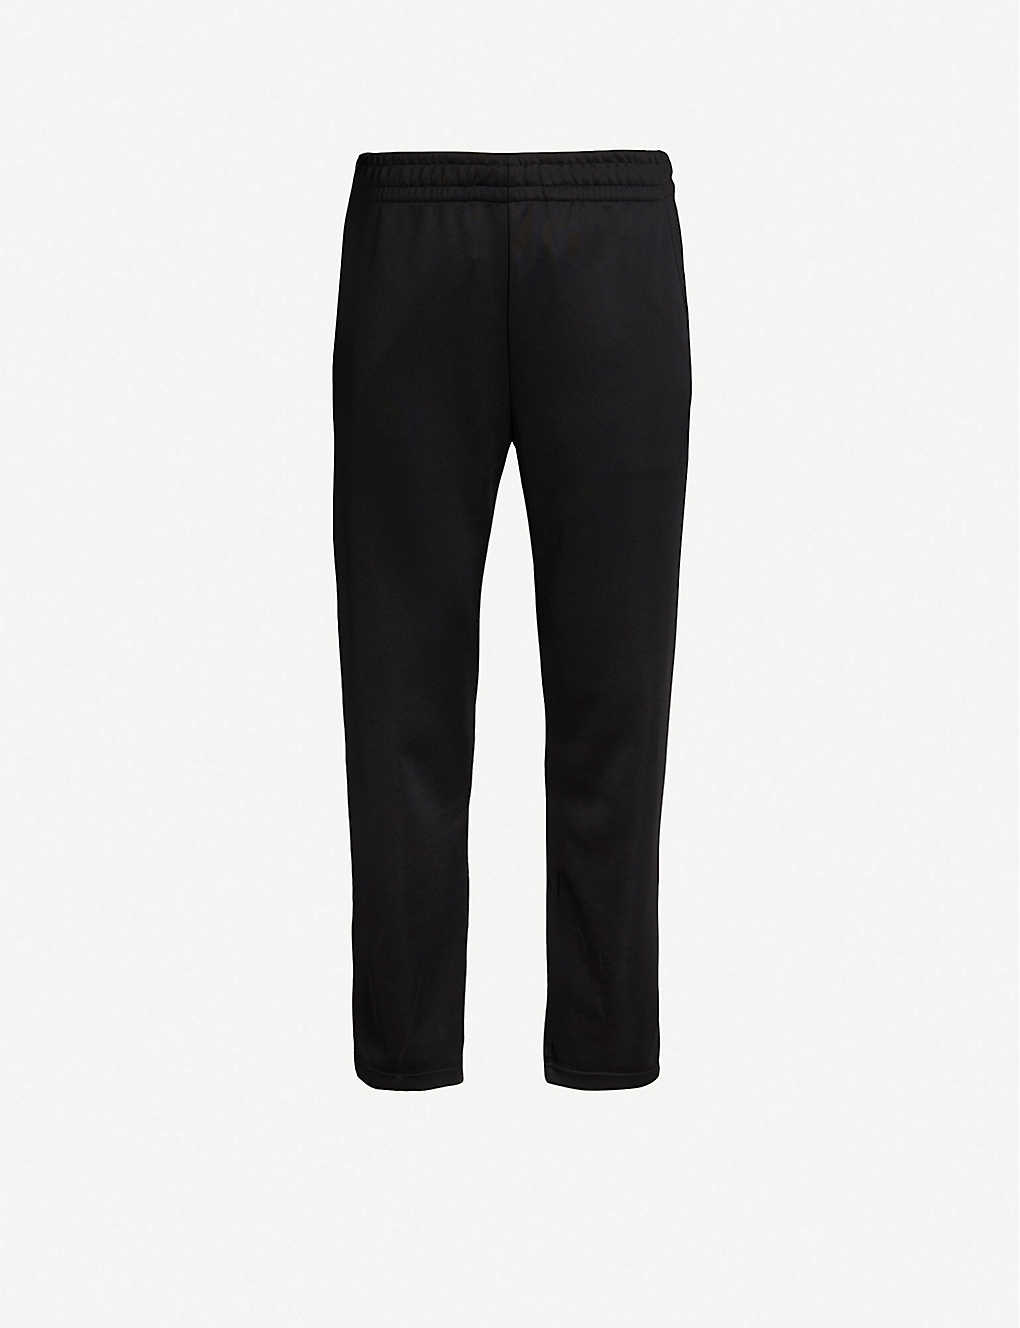 ACNE STUDIOS: Emmett mid-rise stretch-jersey jogging bottoms